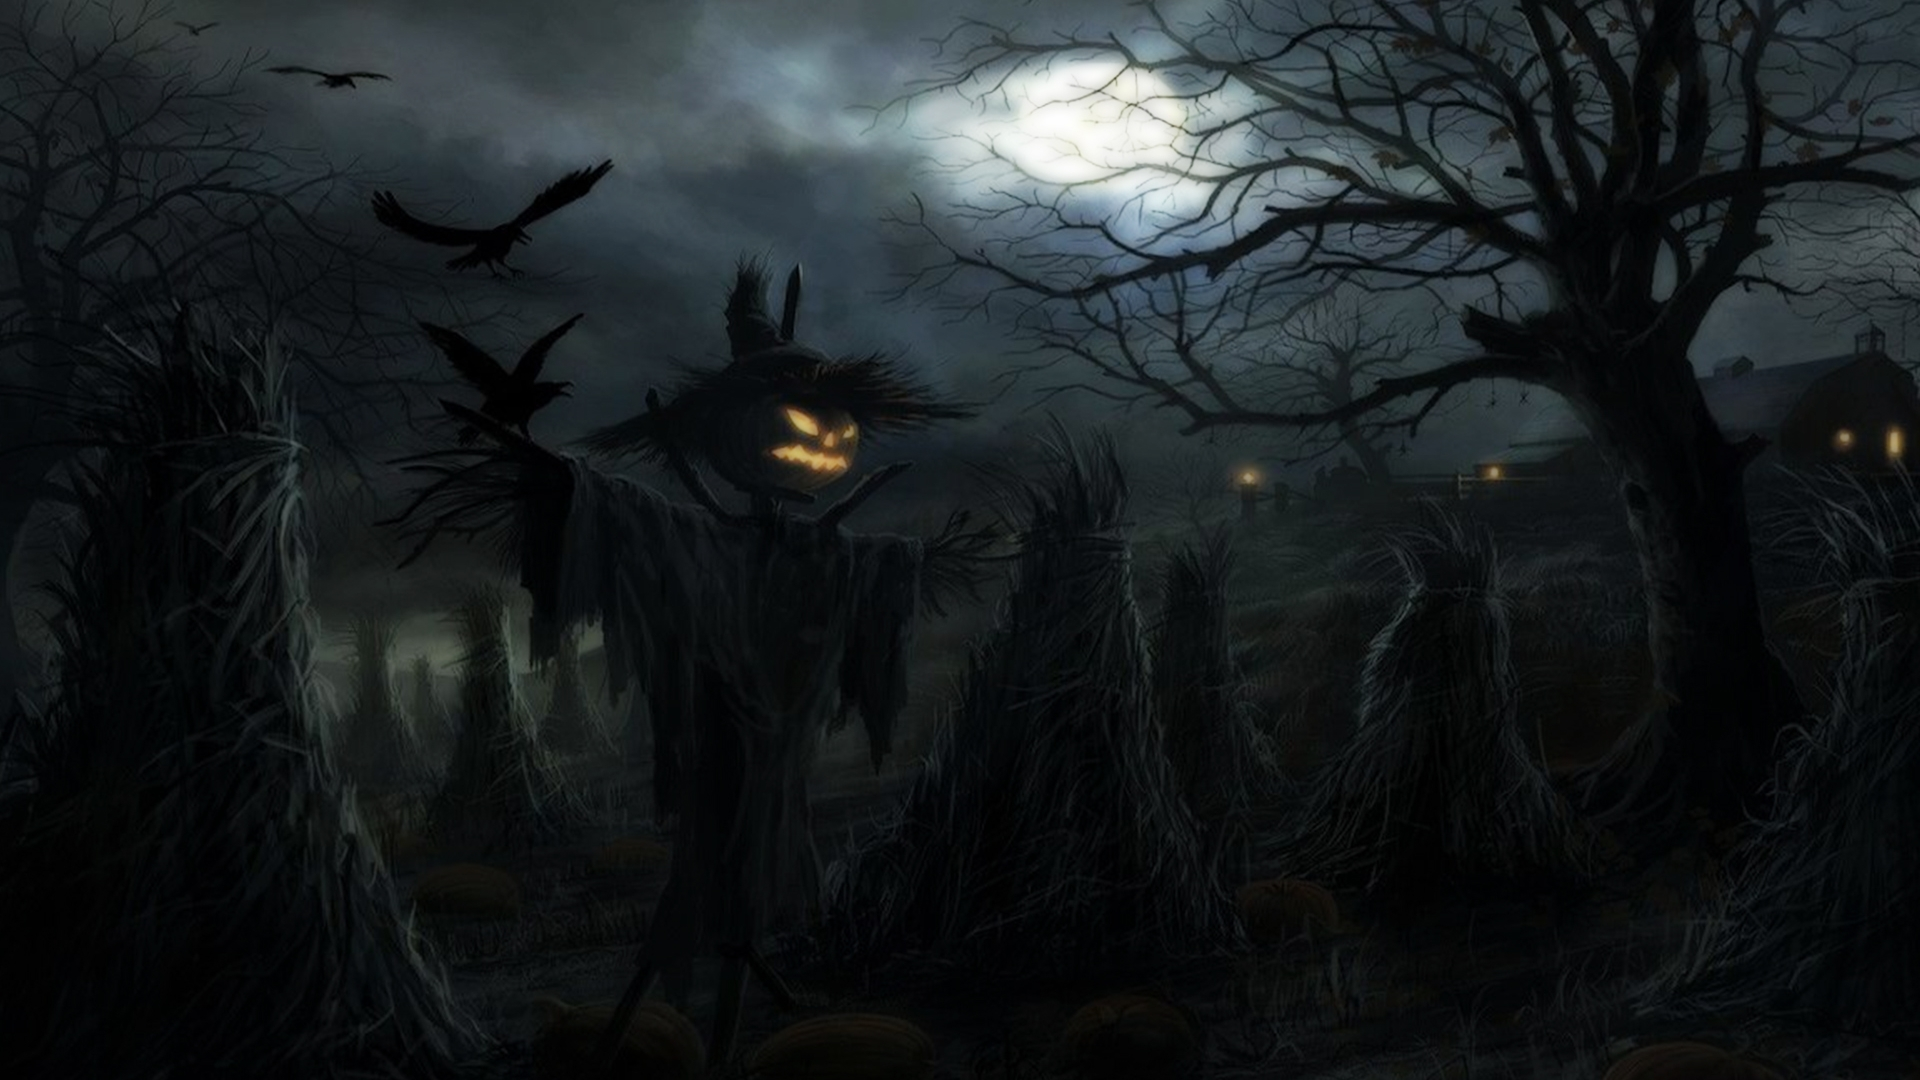 Download Scary Halloween Backgrounds   wallpaperwiki 1920x1080